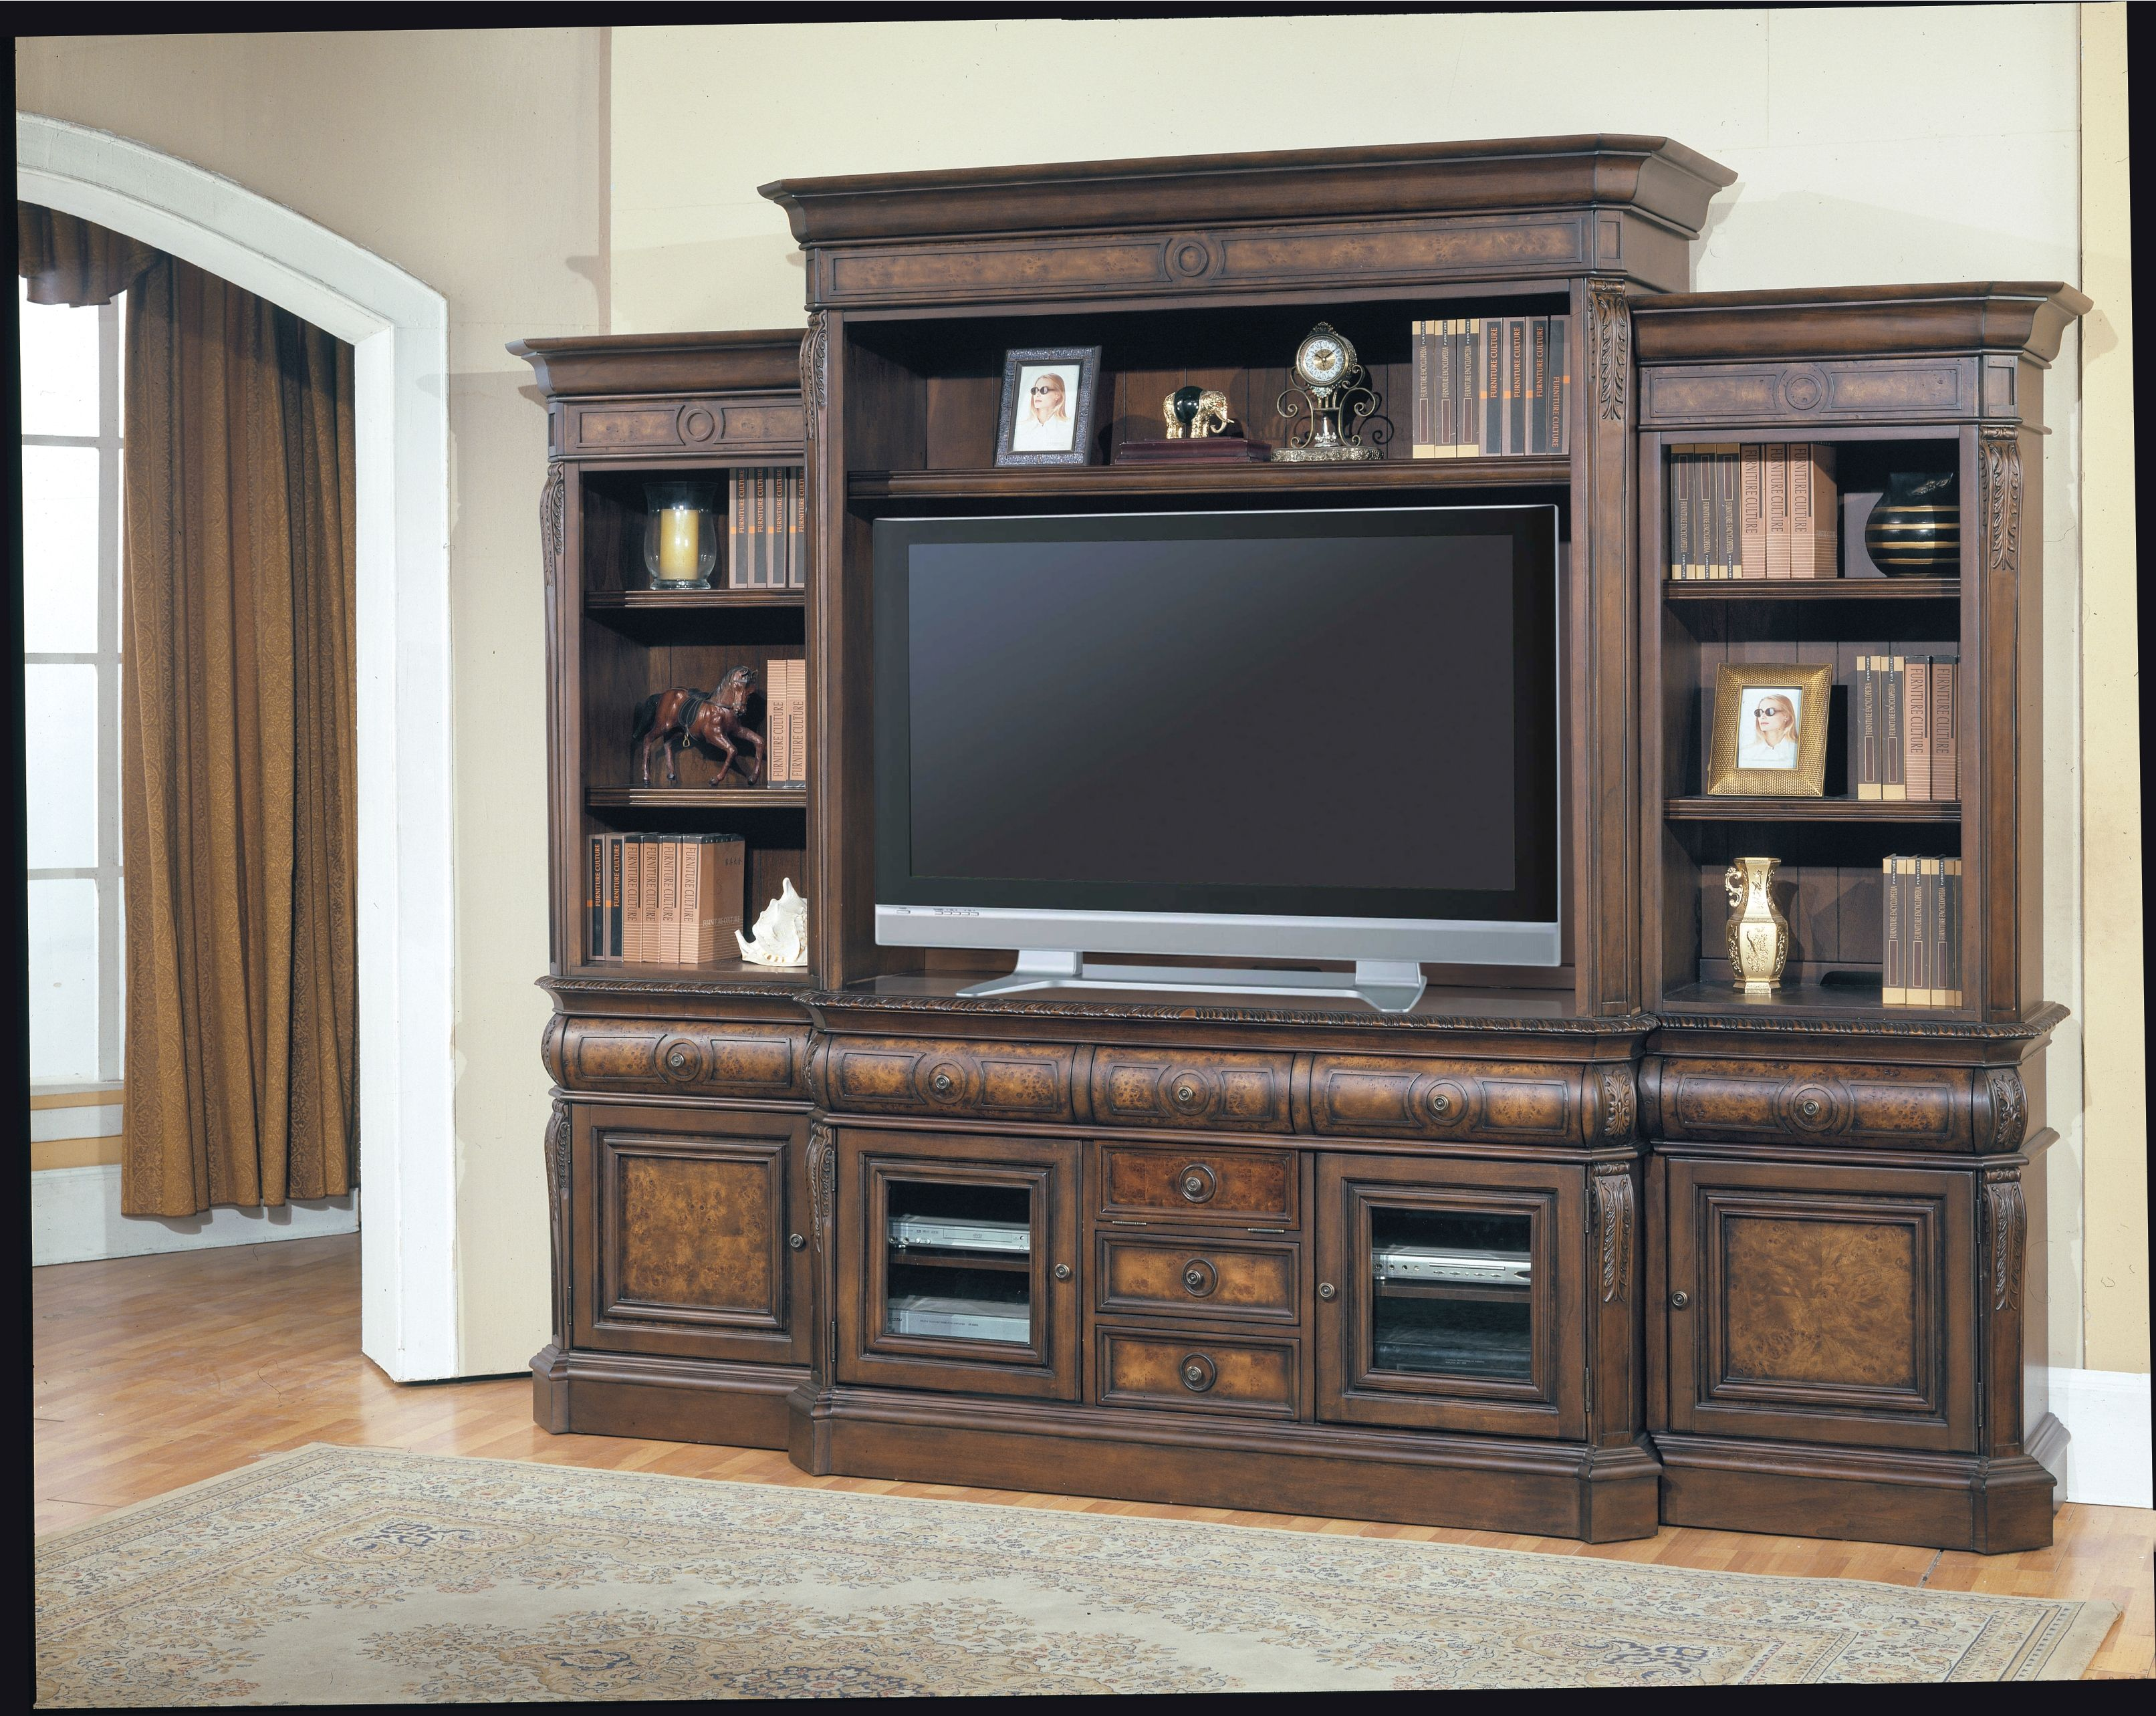 Genial Shop Parker House Entertainment Center At Homelement For The Best Selection  And Price Online. Shop Entertainment Center And More.